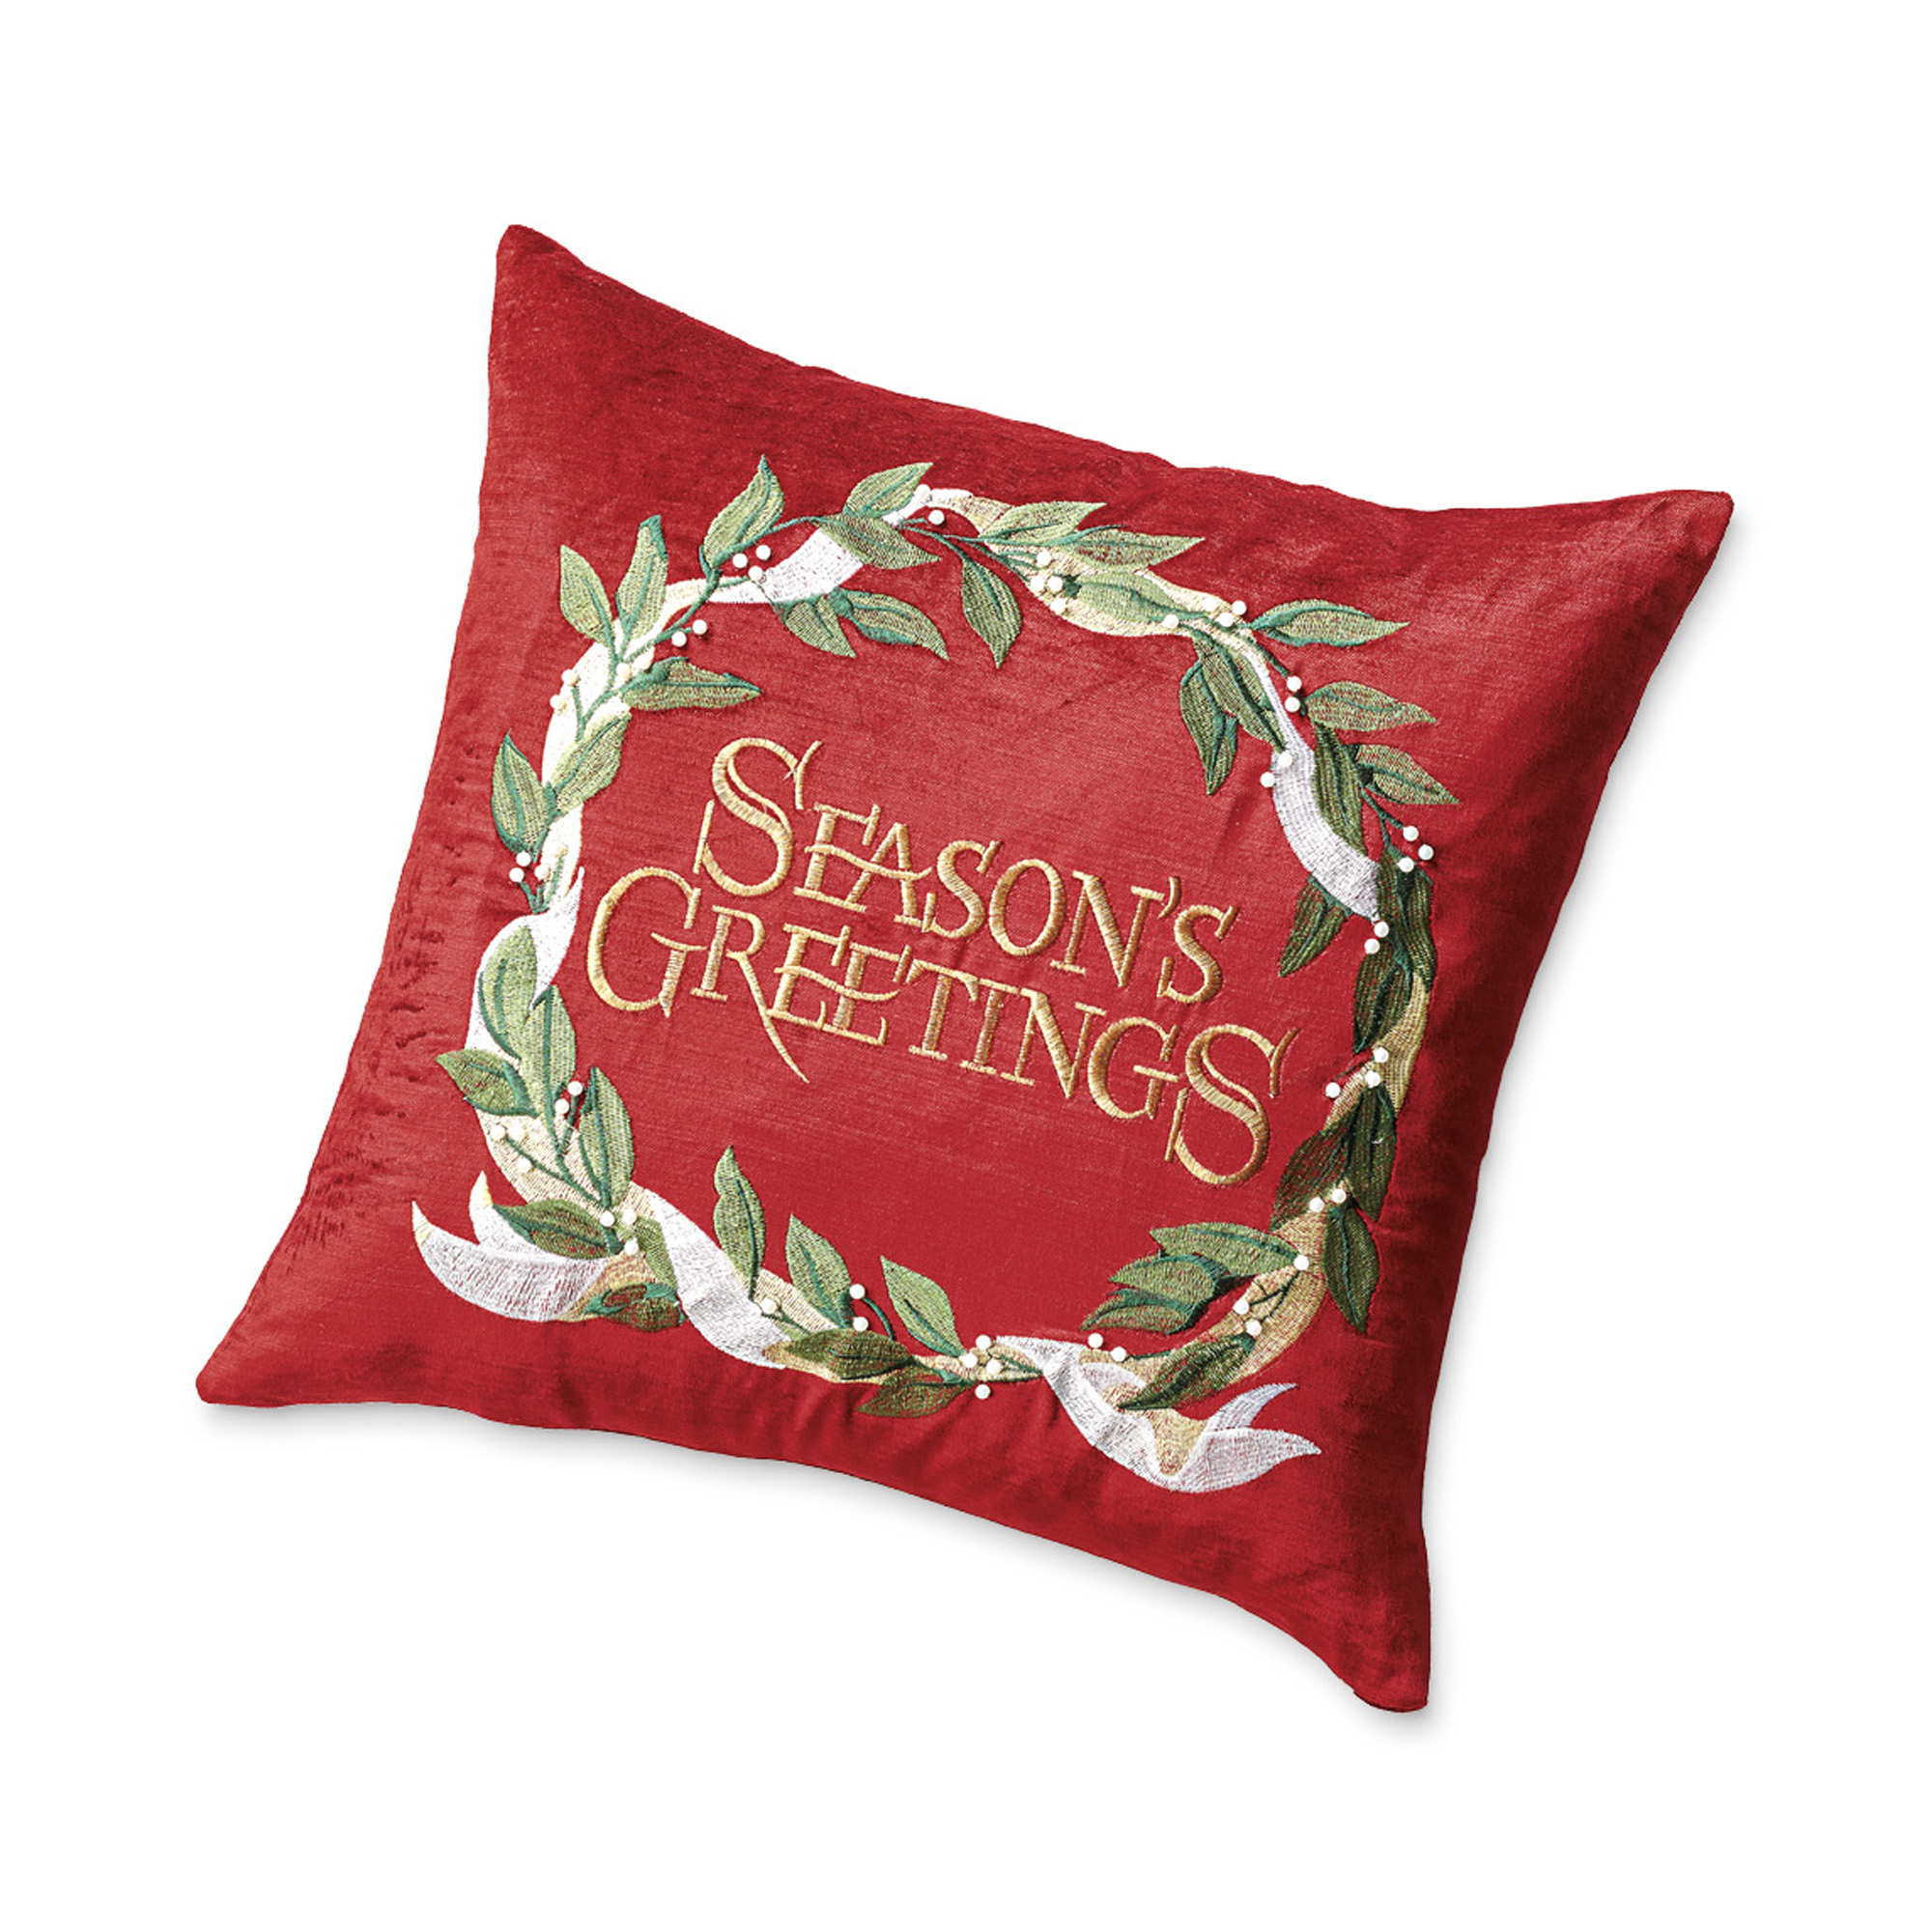 Season's Greetings Velvet Pillow